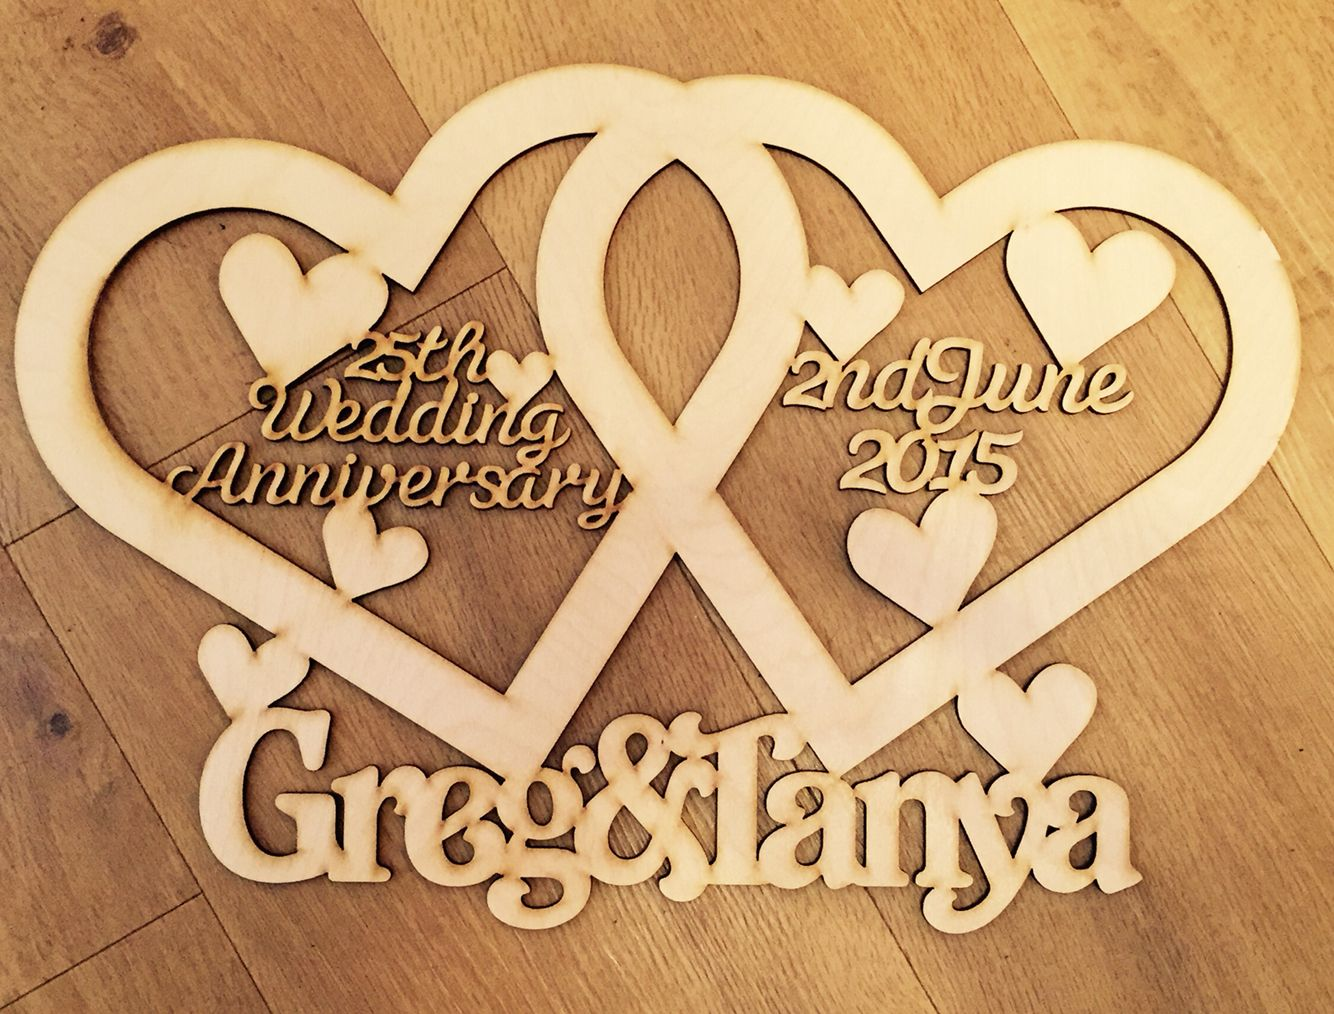 Beautiful Laser Cut Wedding Anniversary Personalised Gift. Search Cut and Crafted on Facebook to see more gorgeous products